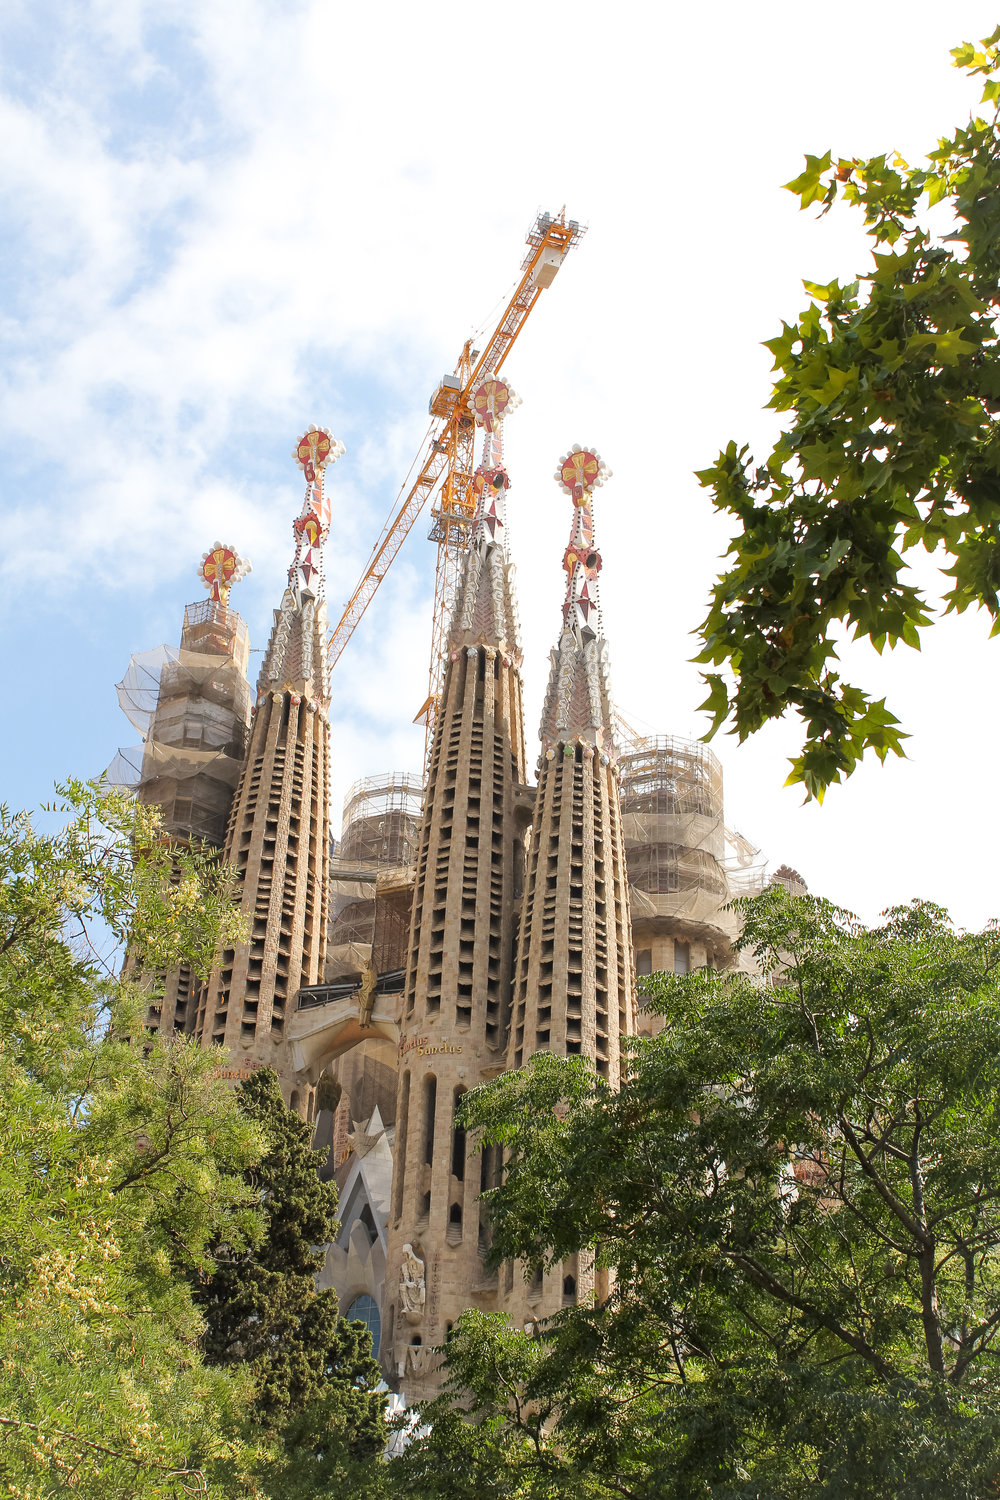 5th July -  La Sagrada Familia  (definitely one of my mum's favourite pieces of architecture)